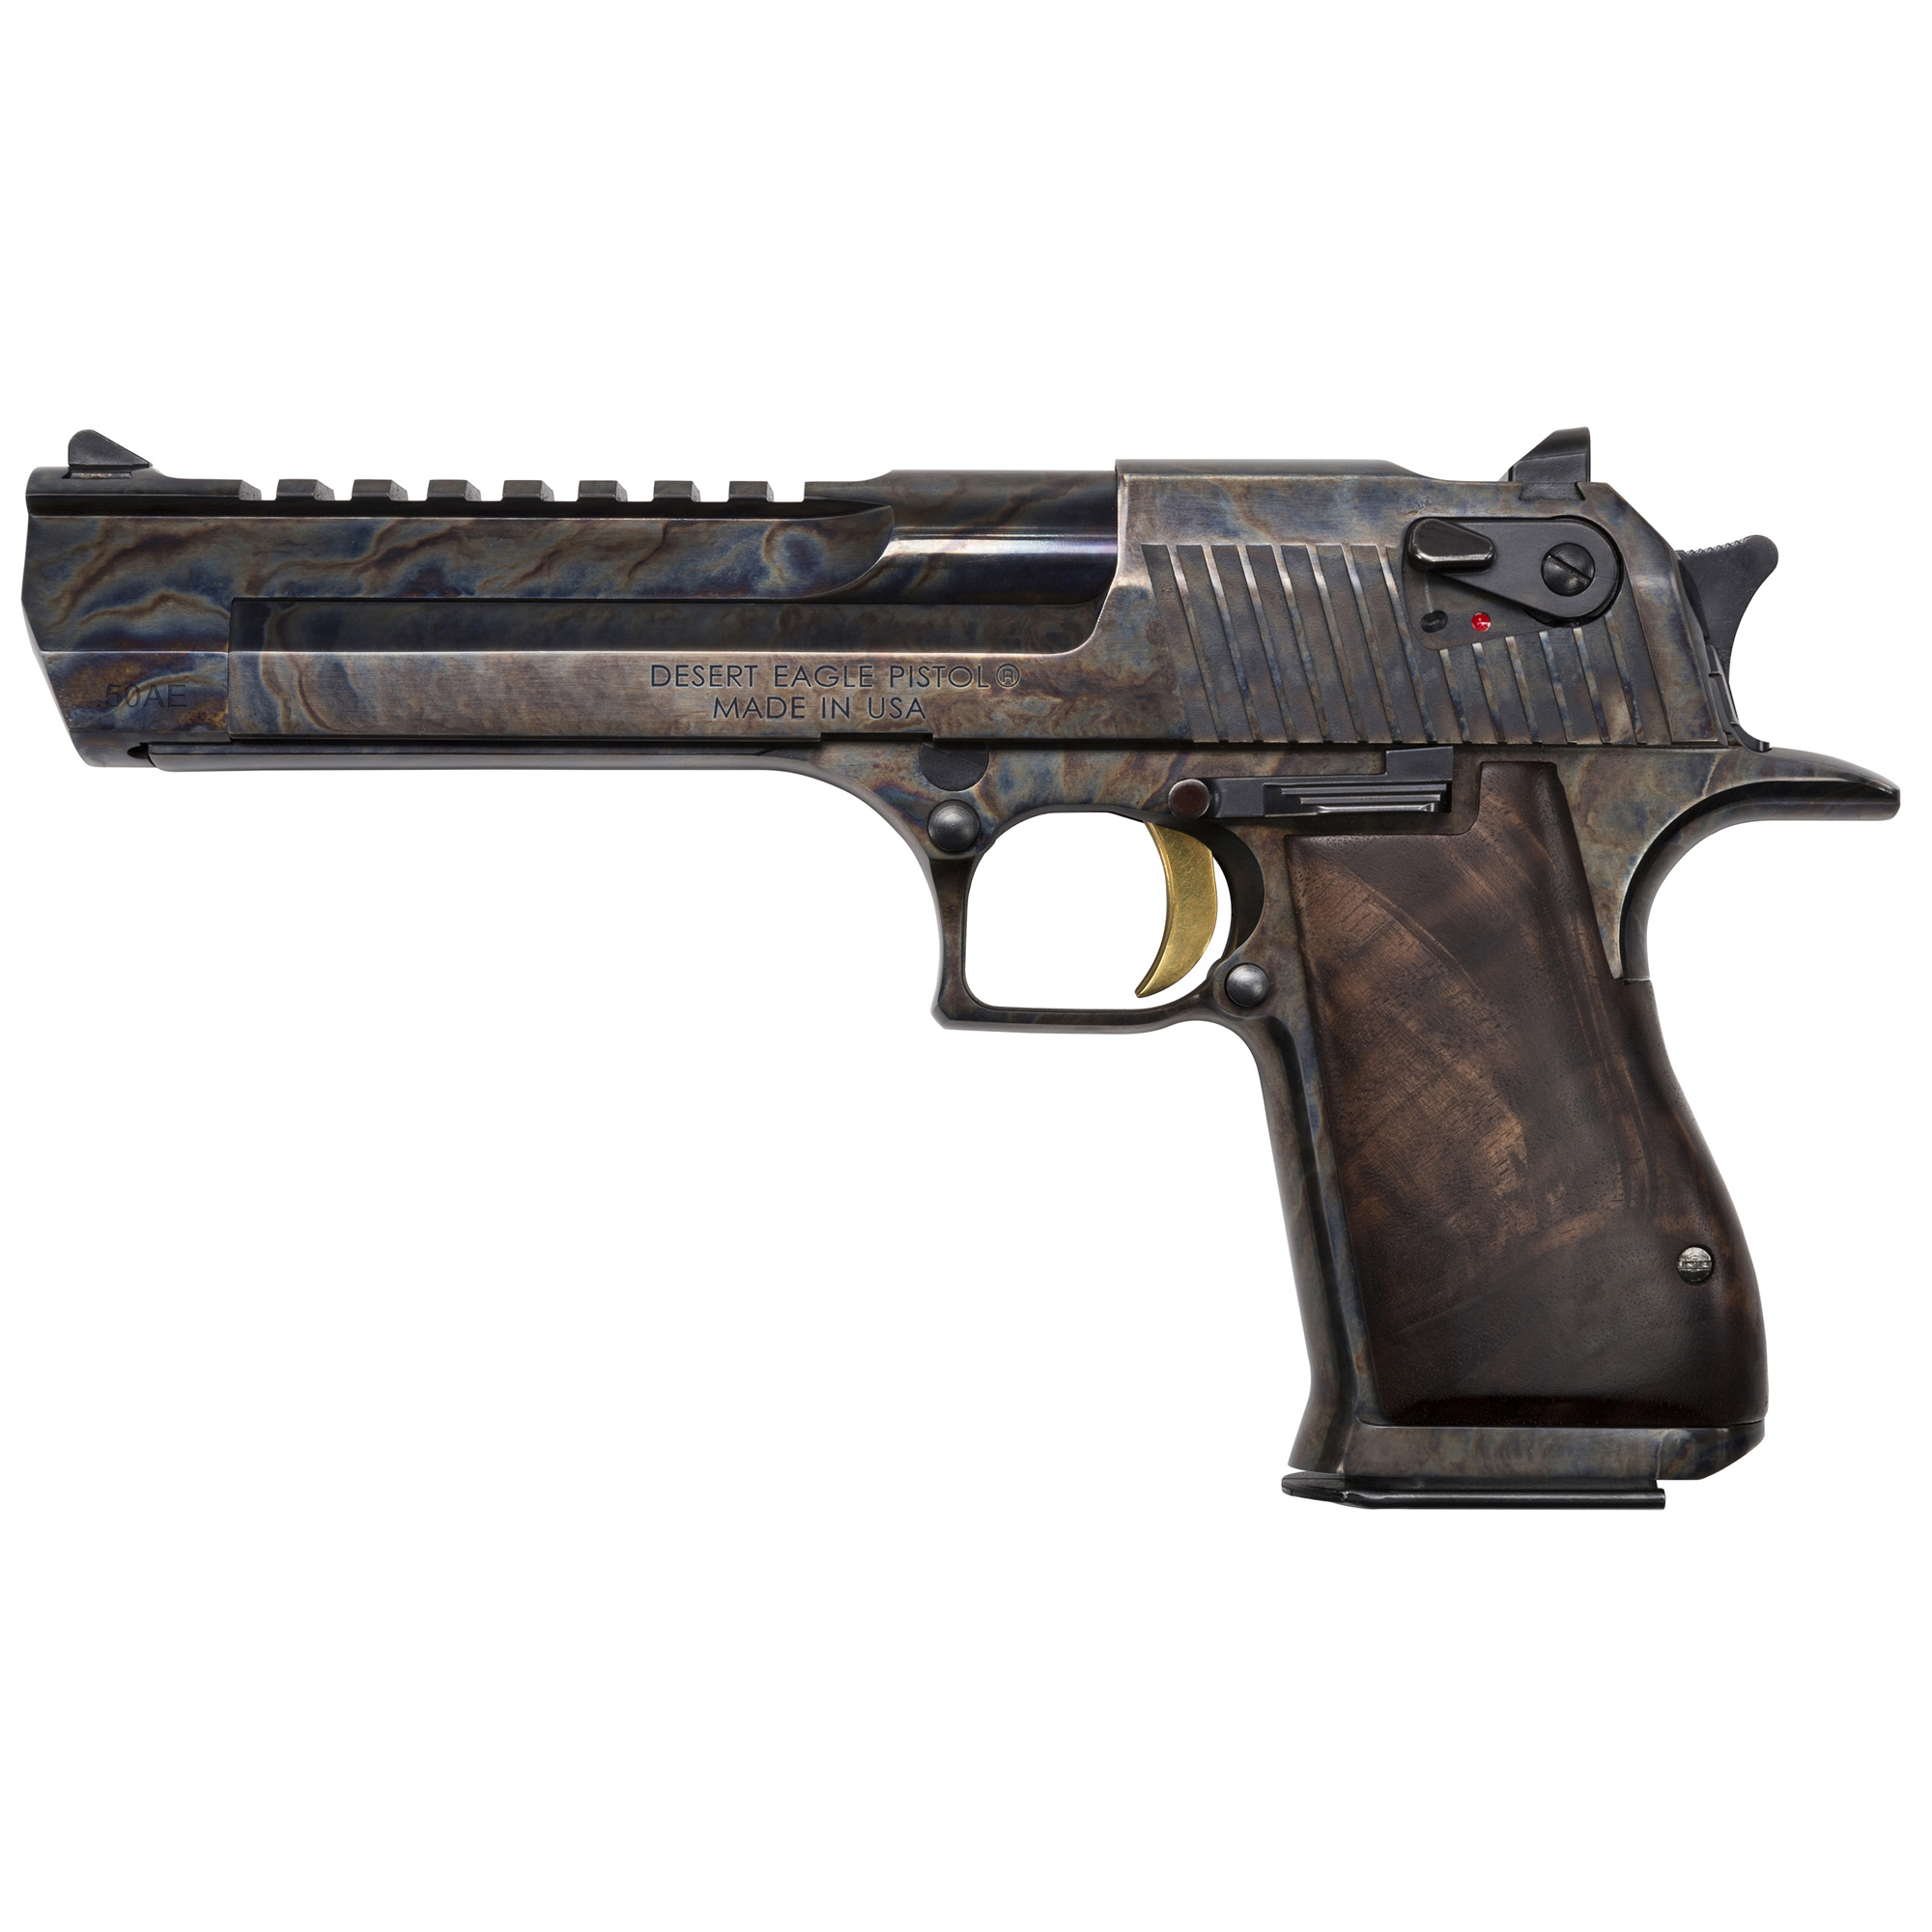 """After 25 years of being accessorized"""" customized and re-imagined in countless movies"""" television shows and video games"""" the Desert Eagle Pistol has emerged as a pop-culture icon. You can customize your Desert Eagle Pistol with a variety of impressive finishes to add your own distinctive twist to this timeless firearm. All models feature a full Weaver style accessory rail on the barrel from the end of the chamber to right behind the front sight and standard ambidextrous safeties. Includes one 7-round magazine"""" a Walnut Grip with engraved Desert Eagle logo and Hogue rubber grips."""